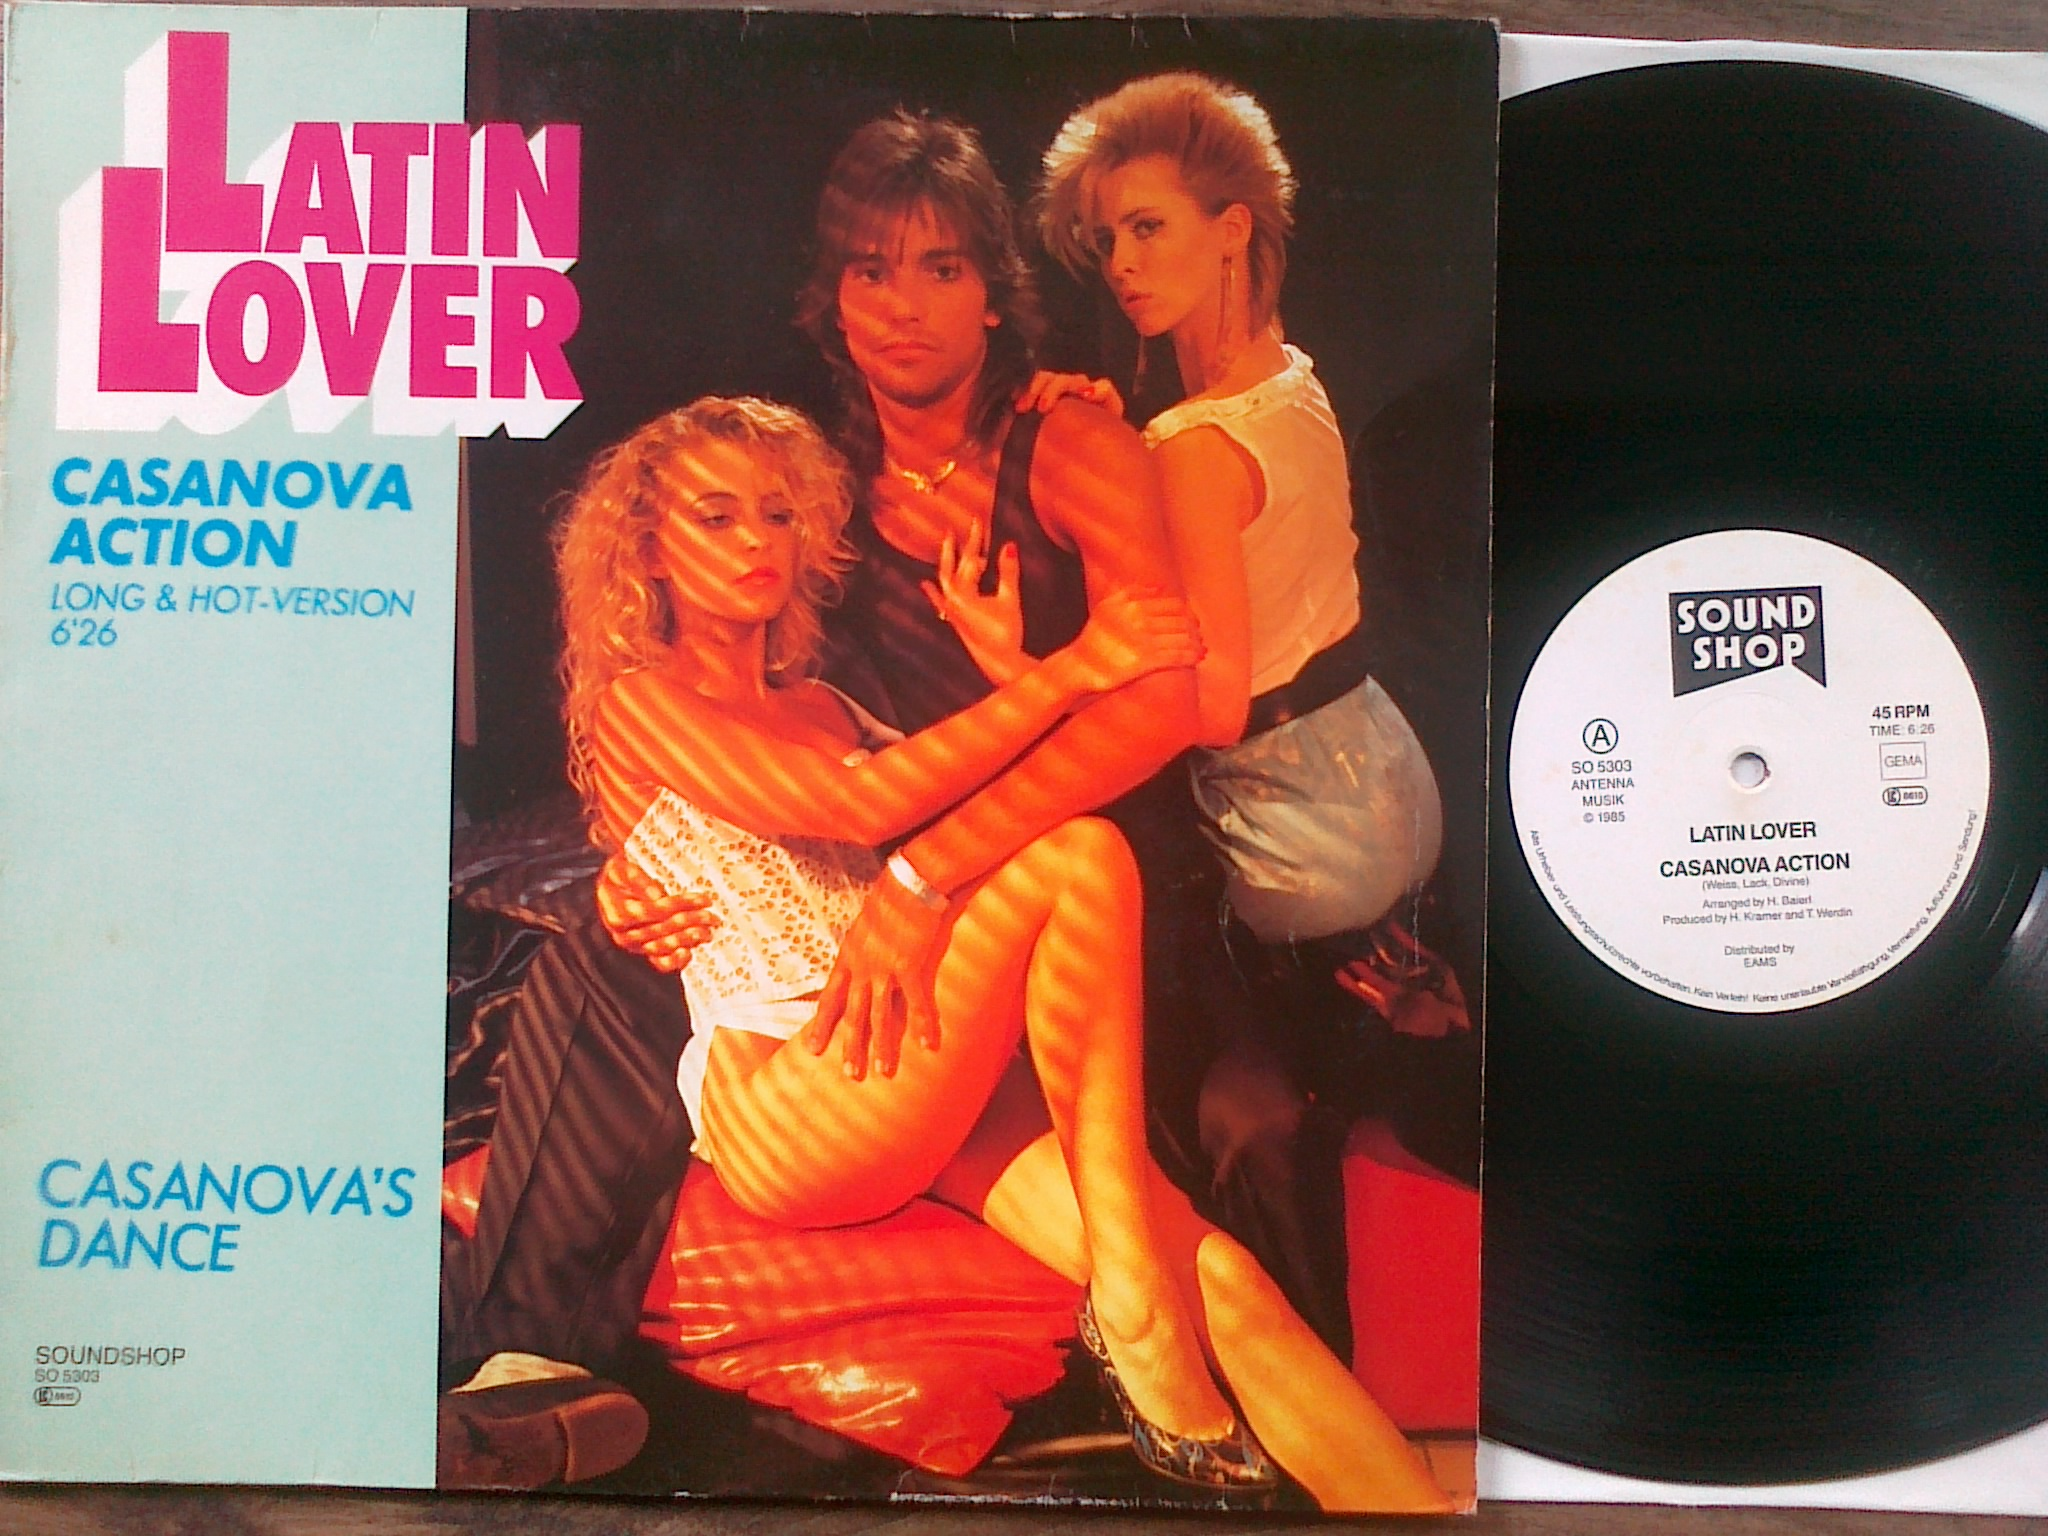 Latin Lover - Casanova action